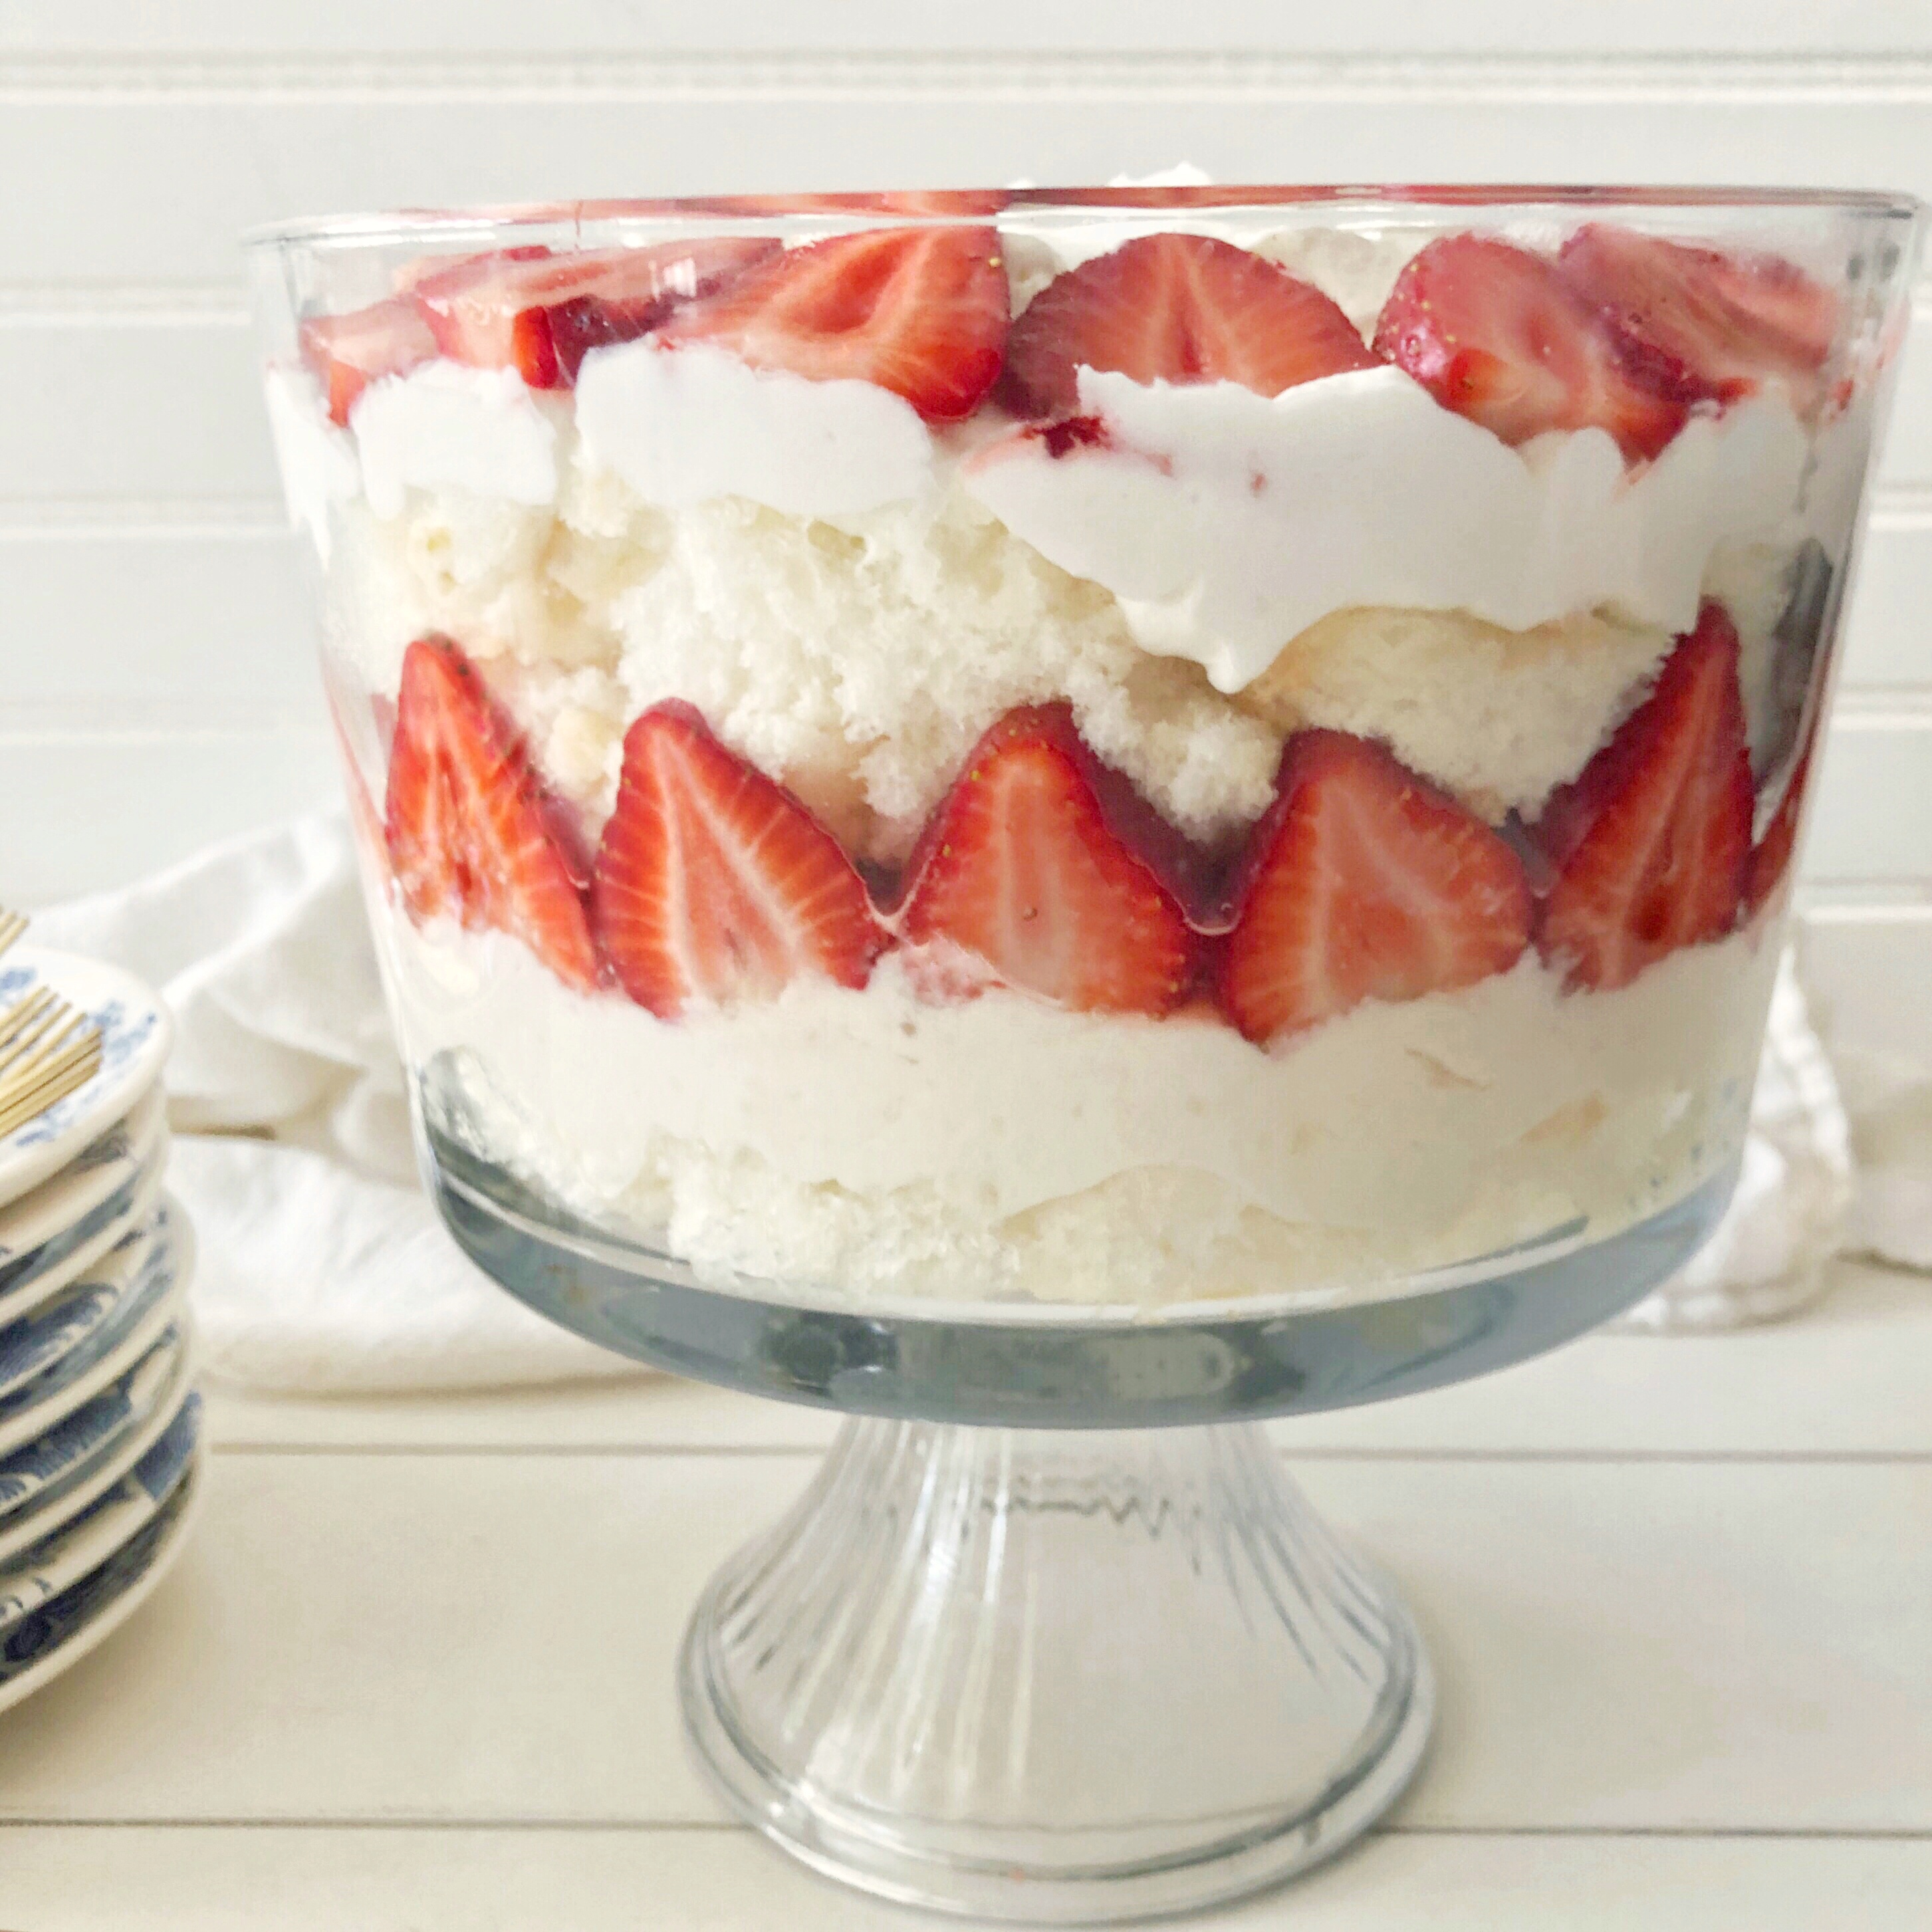 strawberry lemon trifle layered in a footed glass bowl